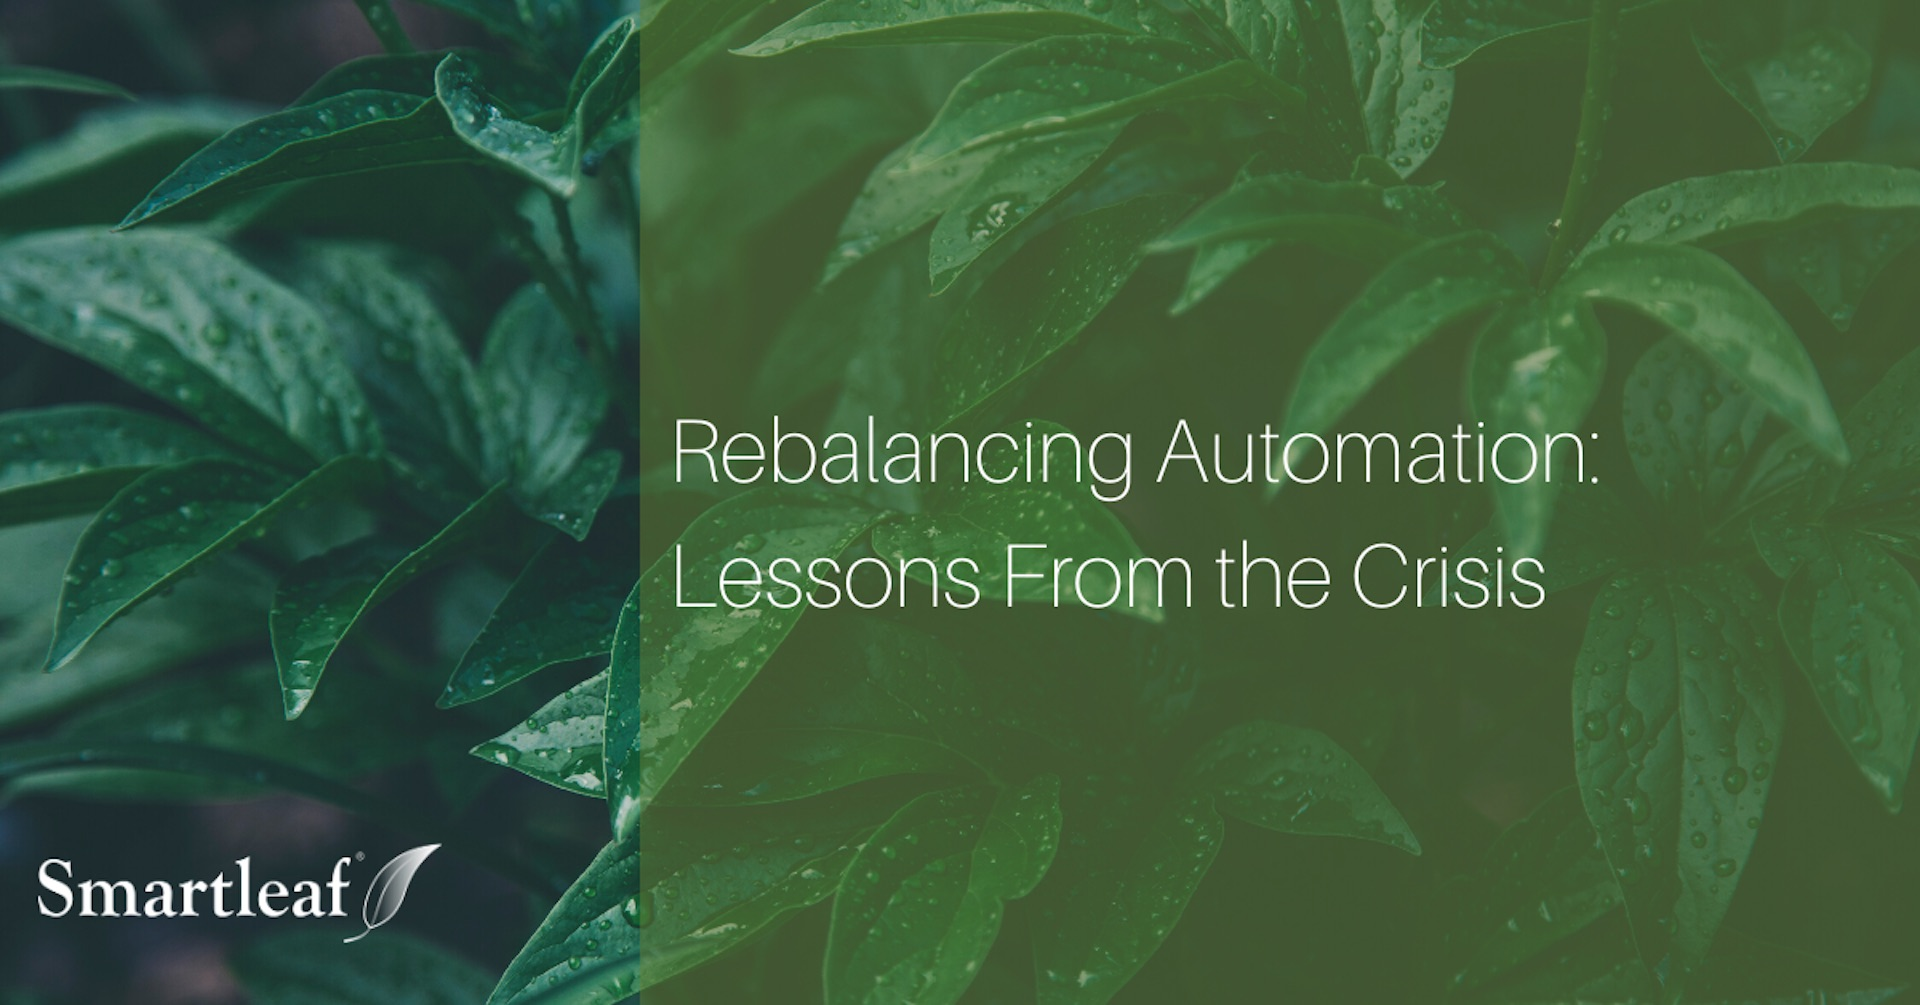 Video: Rebalancing Automation: Lessons From The Crisis Webinar